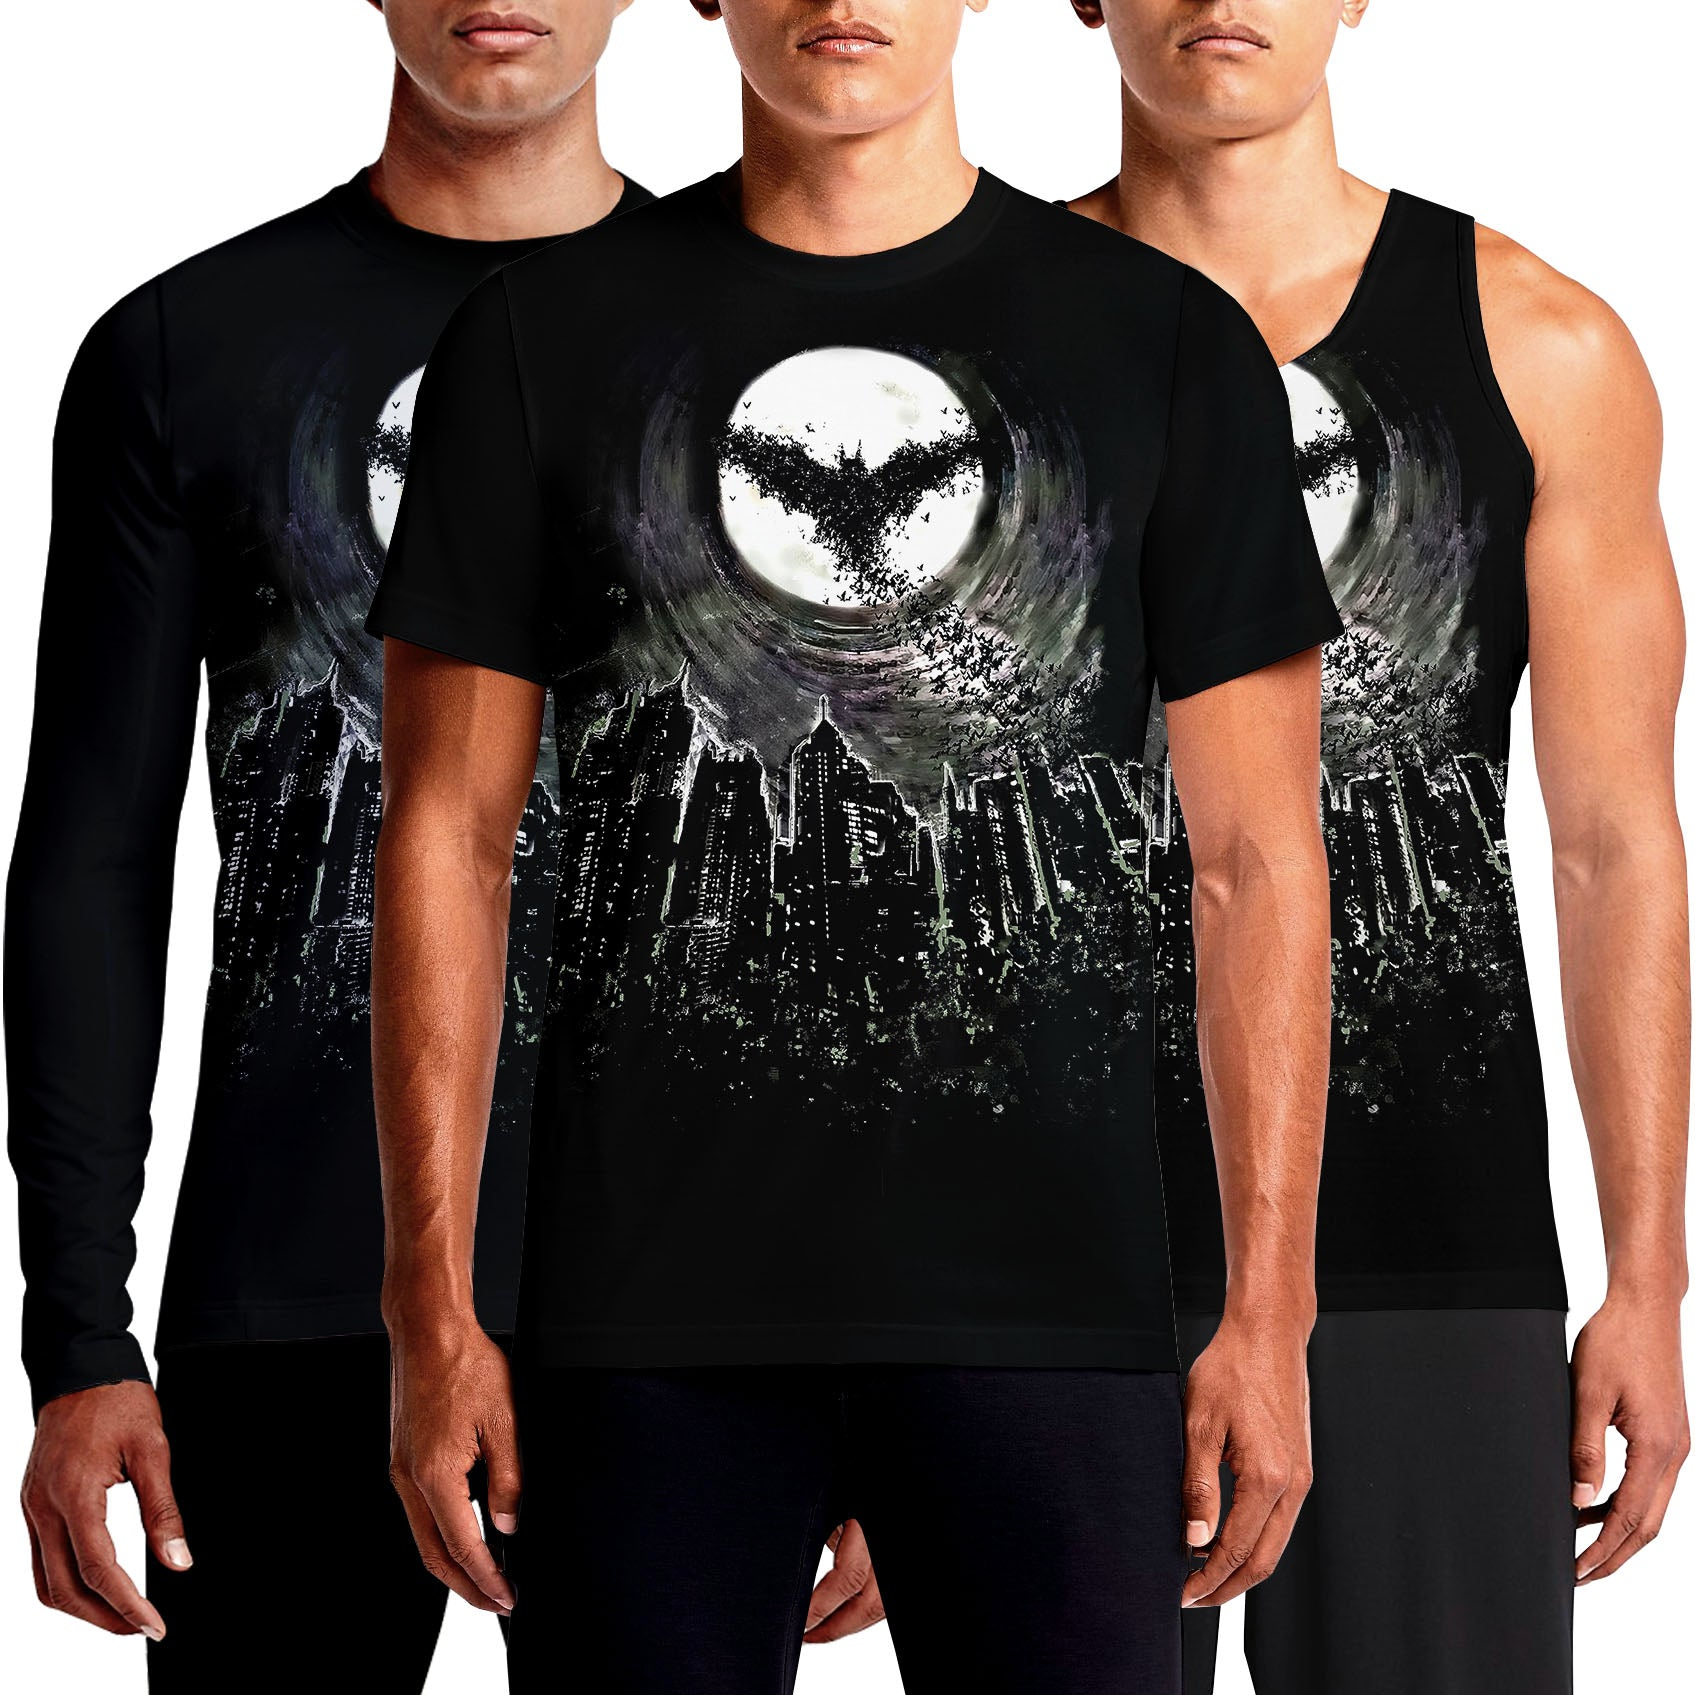 Black t shirt online design - Batman T Shirt Joker T Shirts India Dark Knight Shirt Online White Black Printed Arkham